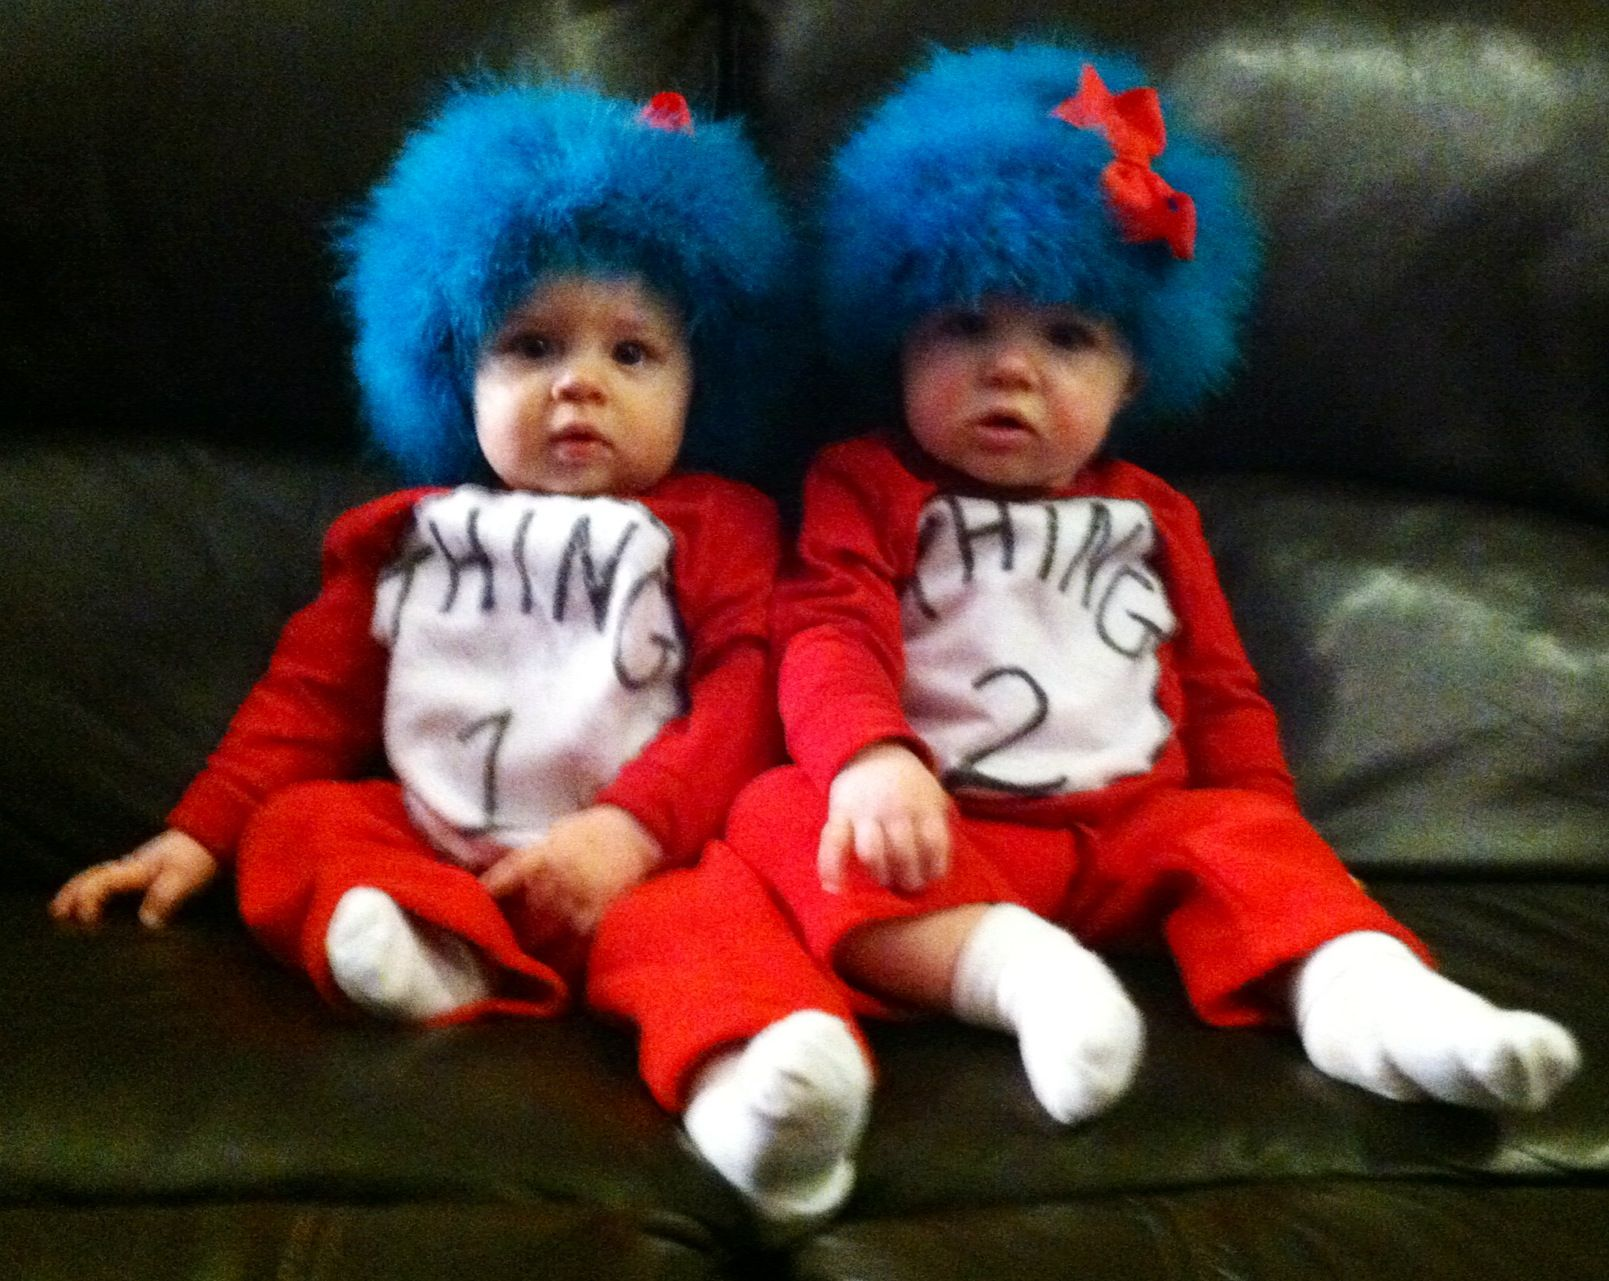 Thing 1 and Thing 2 Dr Seuss Twin Halloween costumes I cut a felt